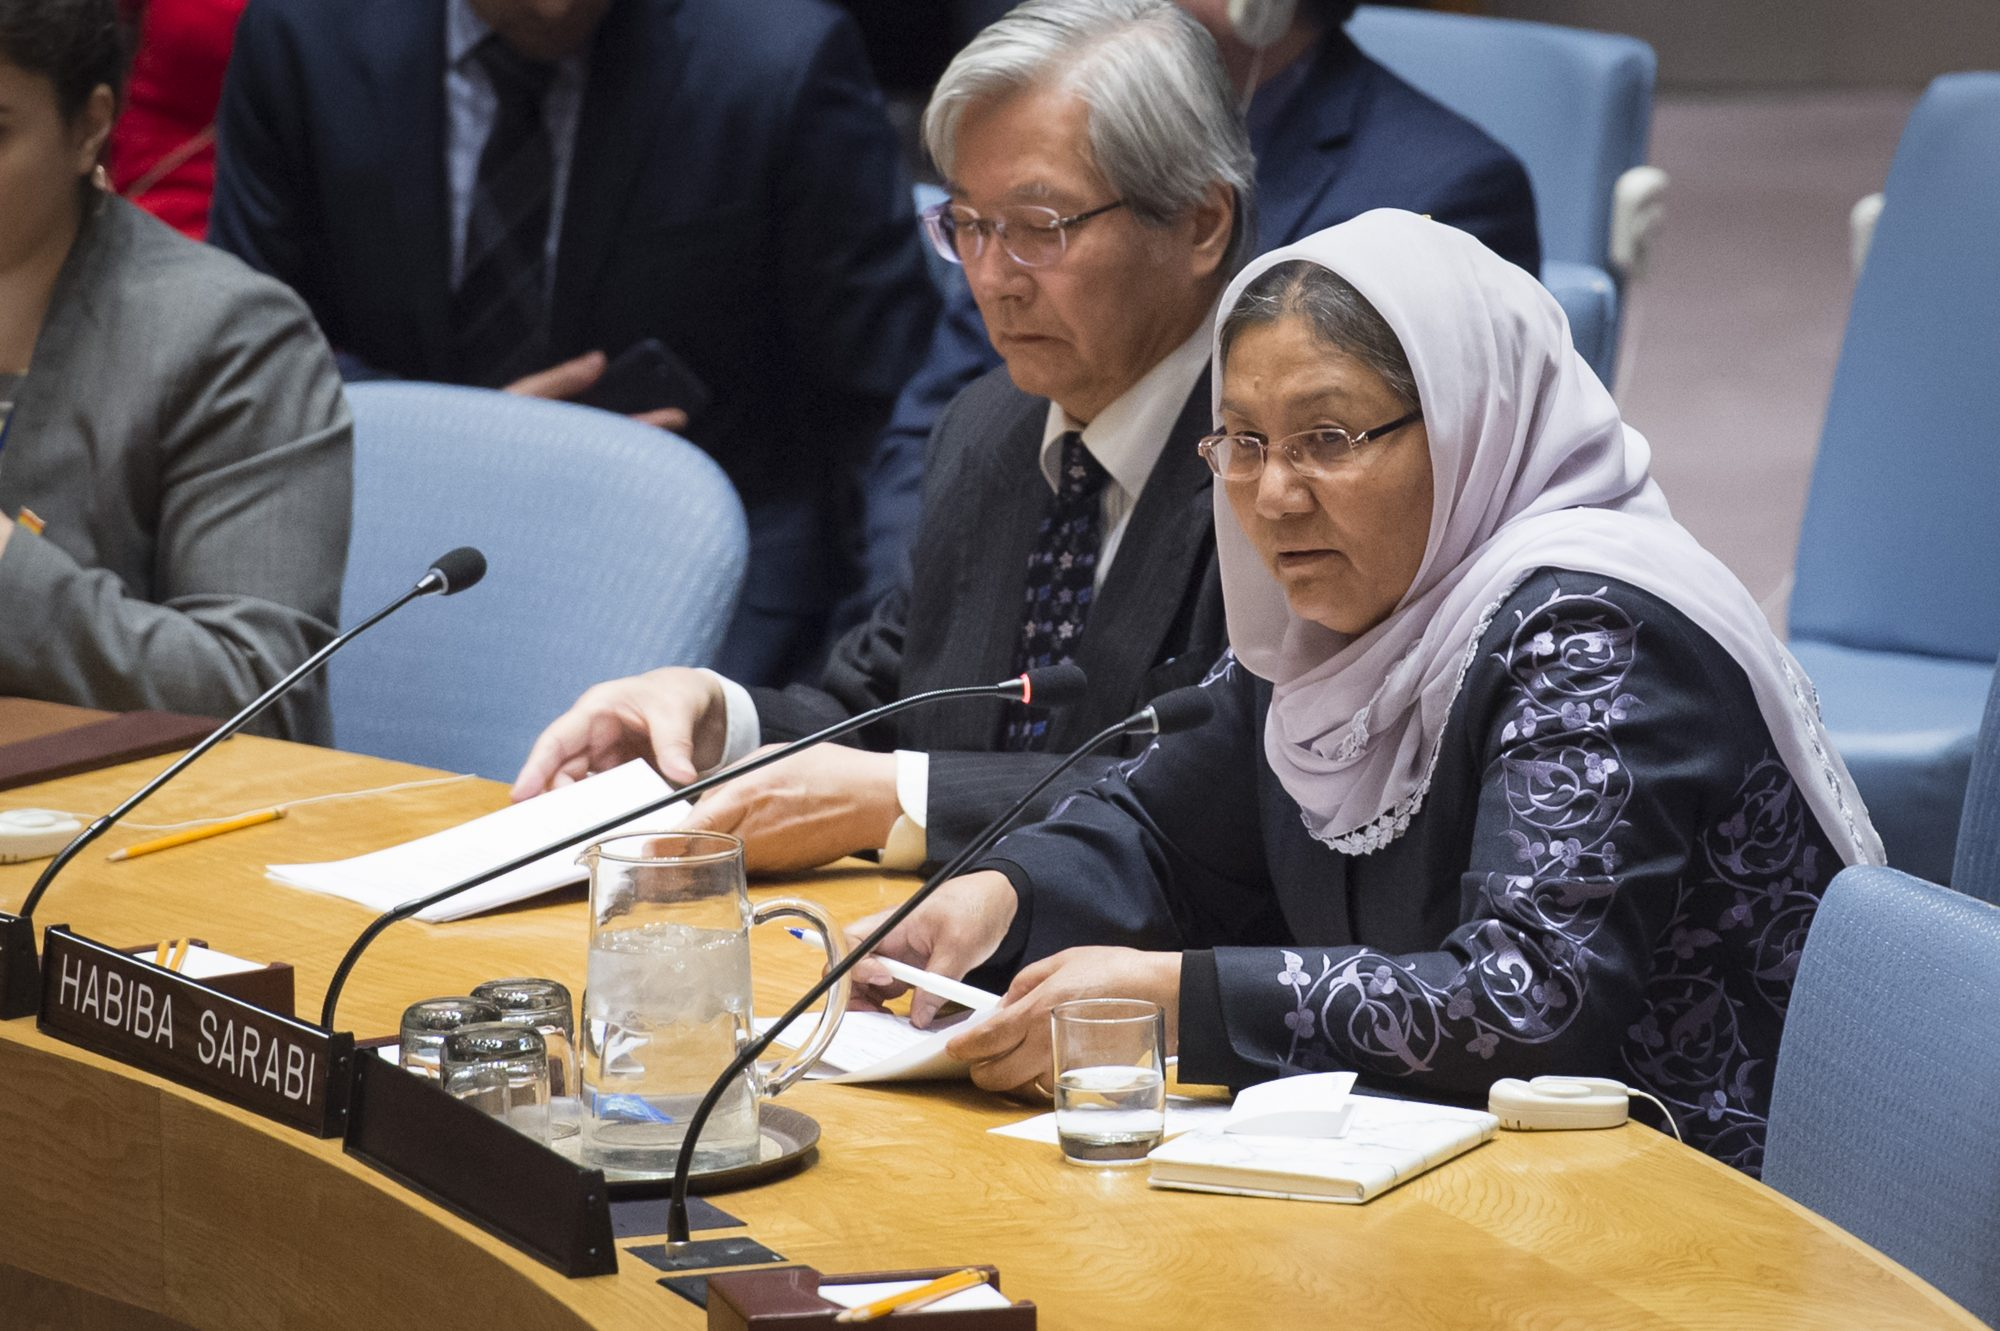 UN Security Council Briefing on Afghanistan by Habiba Sarabi